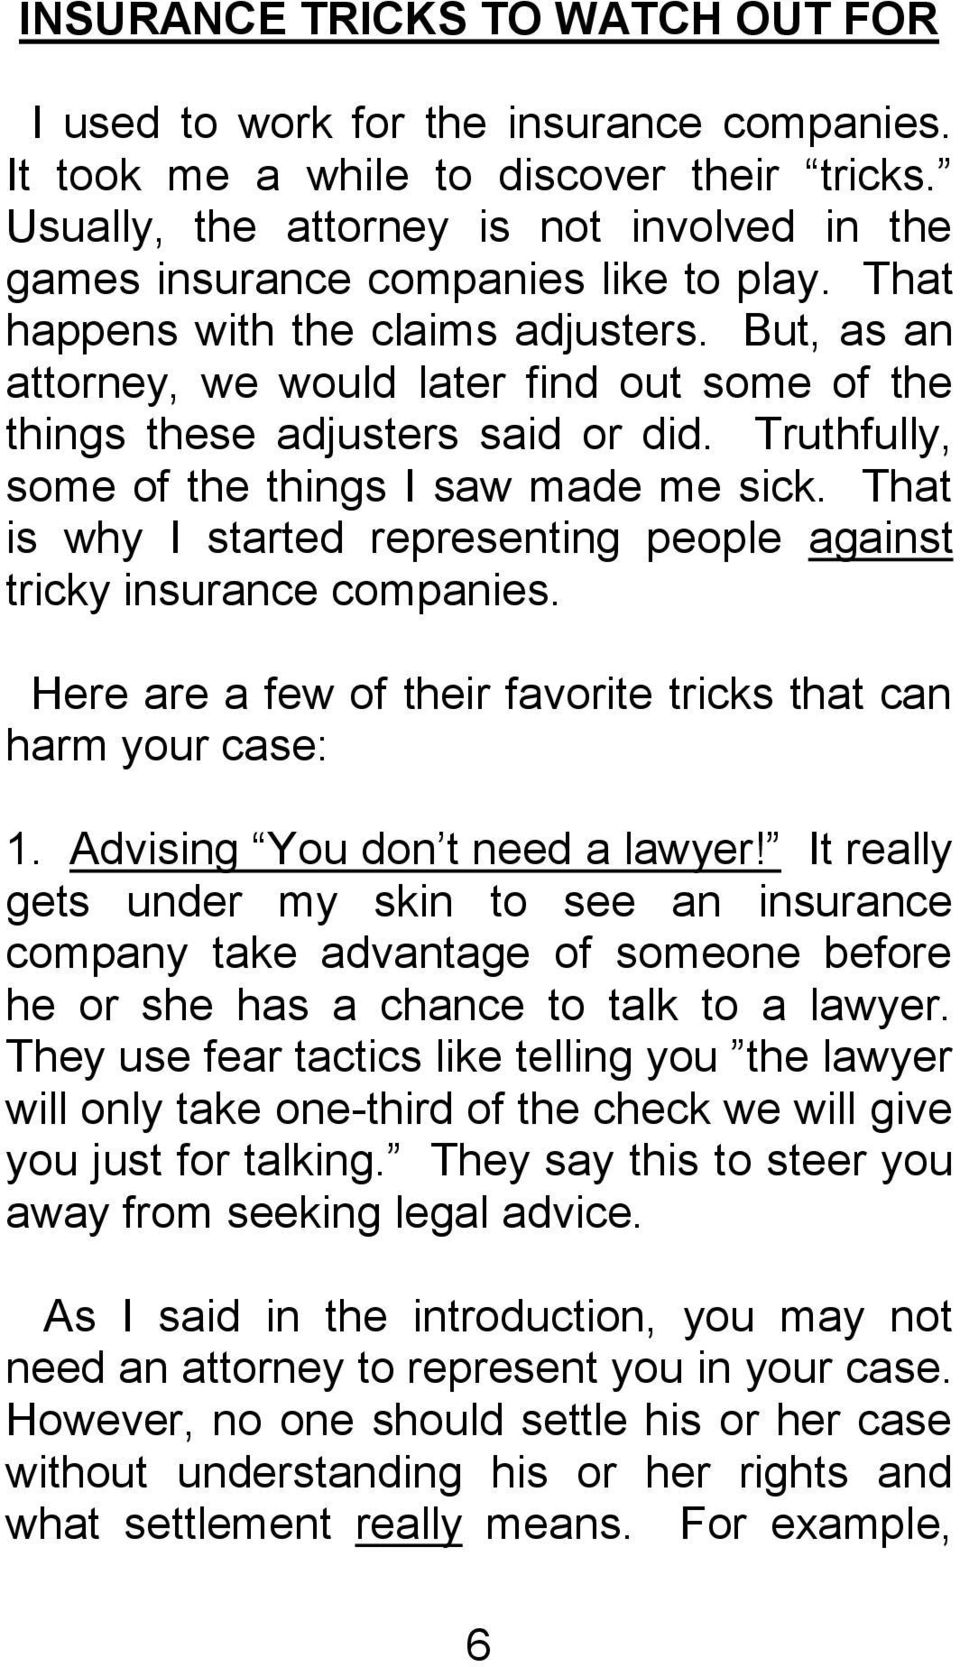 But, as an attorney, we would later find out some of the things these adjusters said or did. Truthfully, some of the things I saw made me sick.